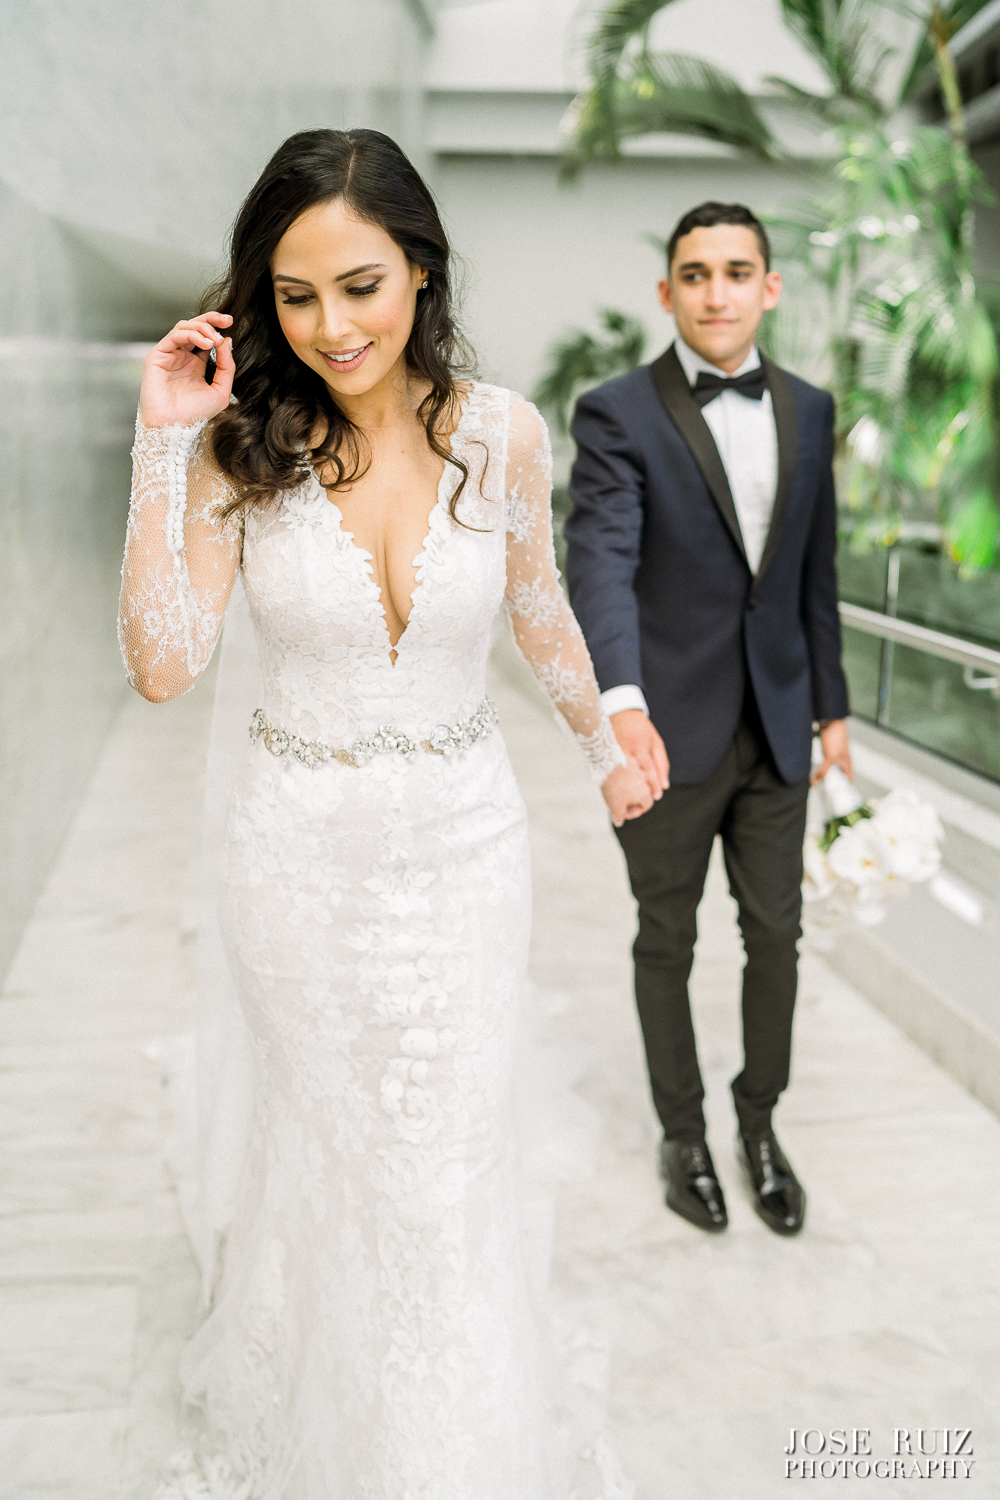 Jose Ruiz Photography- Veronica & Ivan-0101.jpg